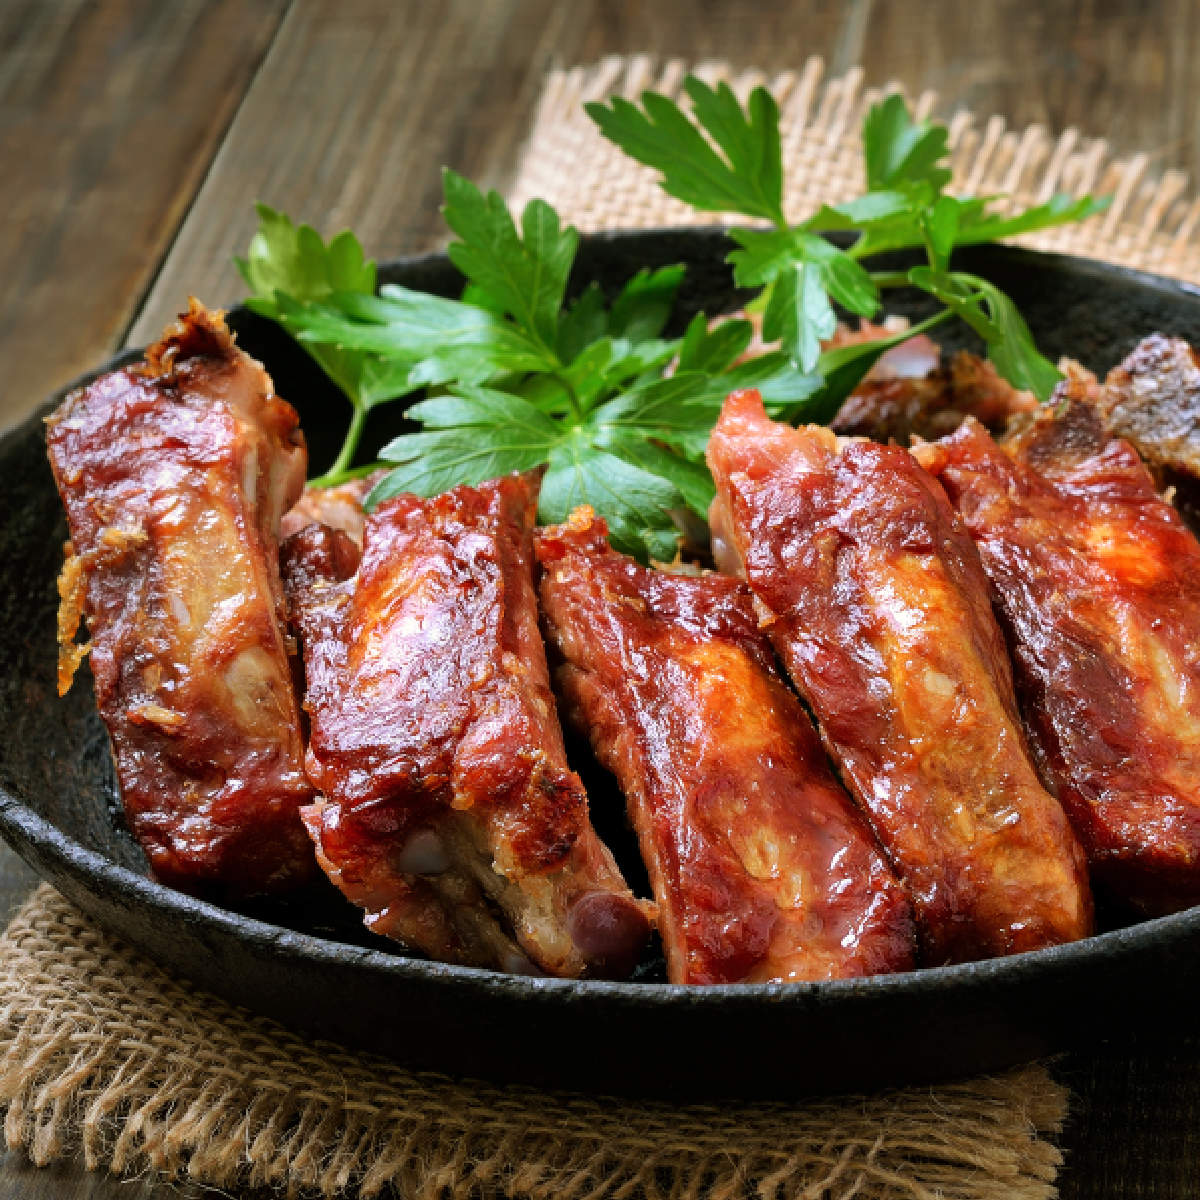 Bbq Pork Ribs Recipe How To Make Bbq Pork Ribs Recipe Homemade Bbq Pork Ribs Recipe